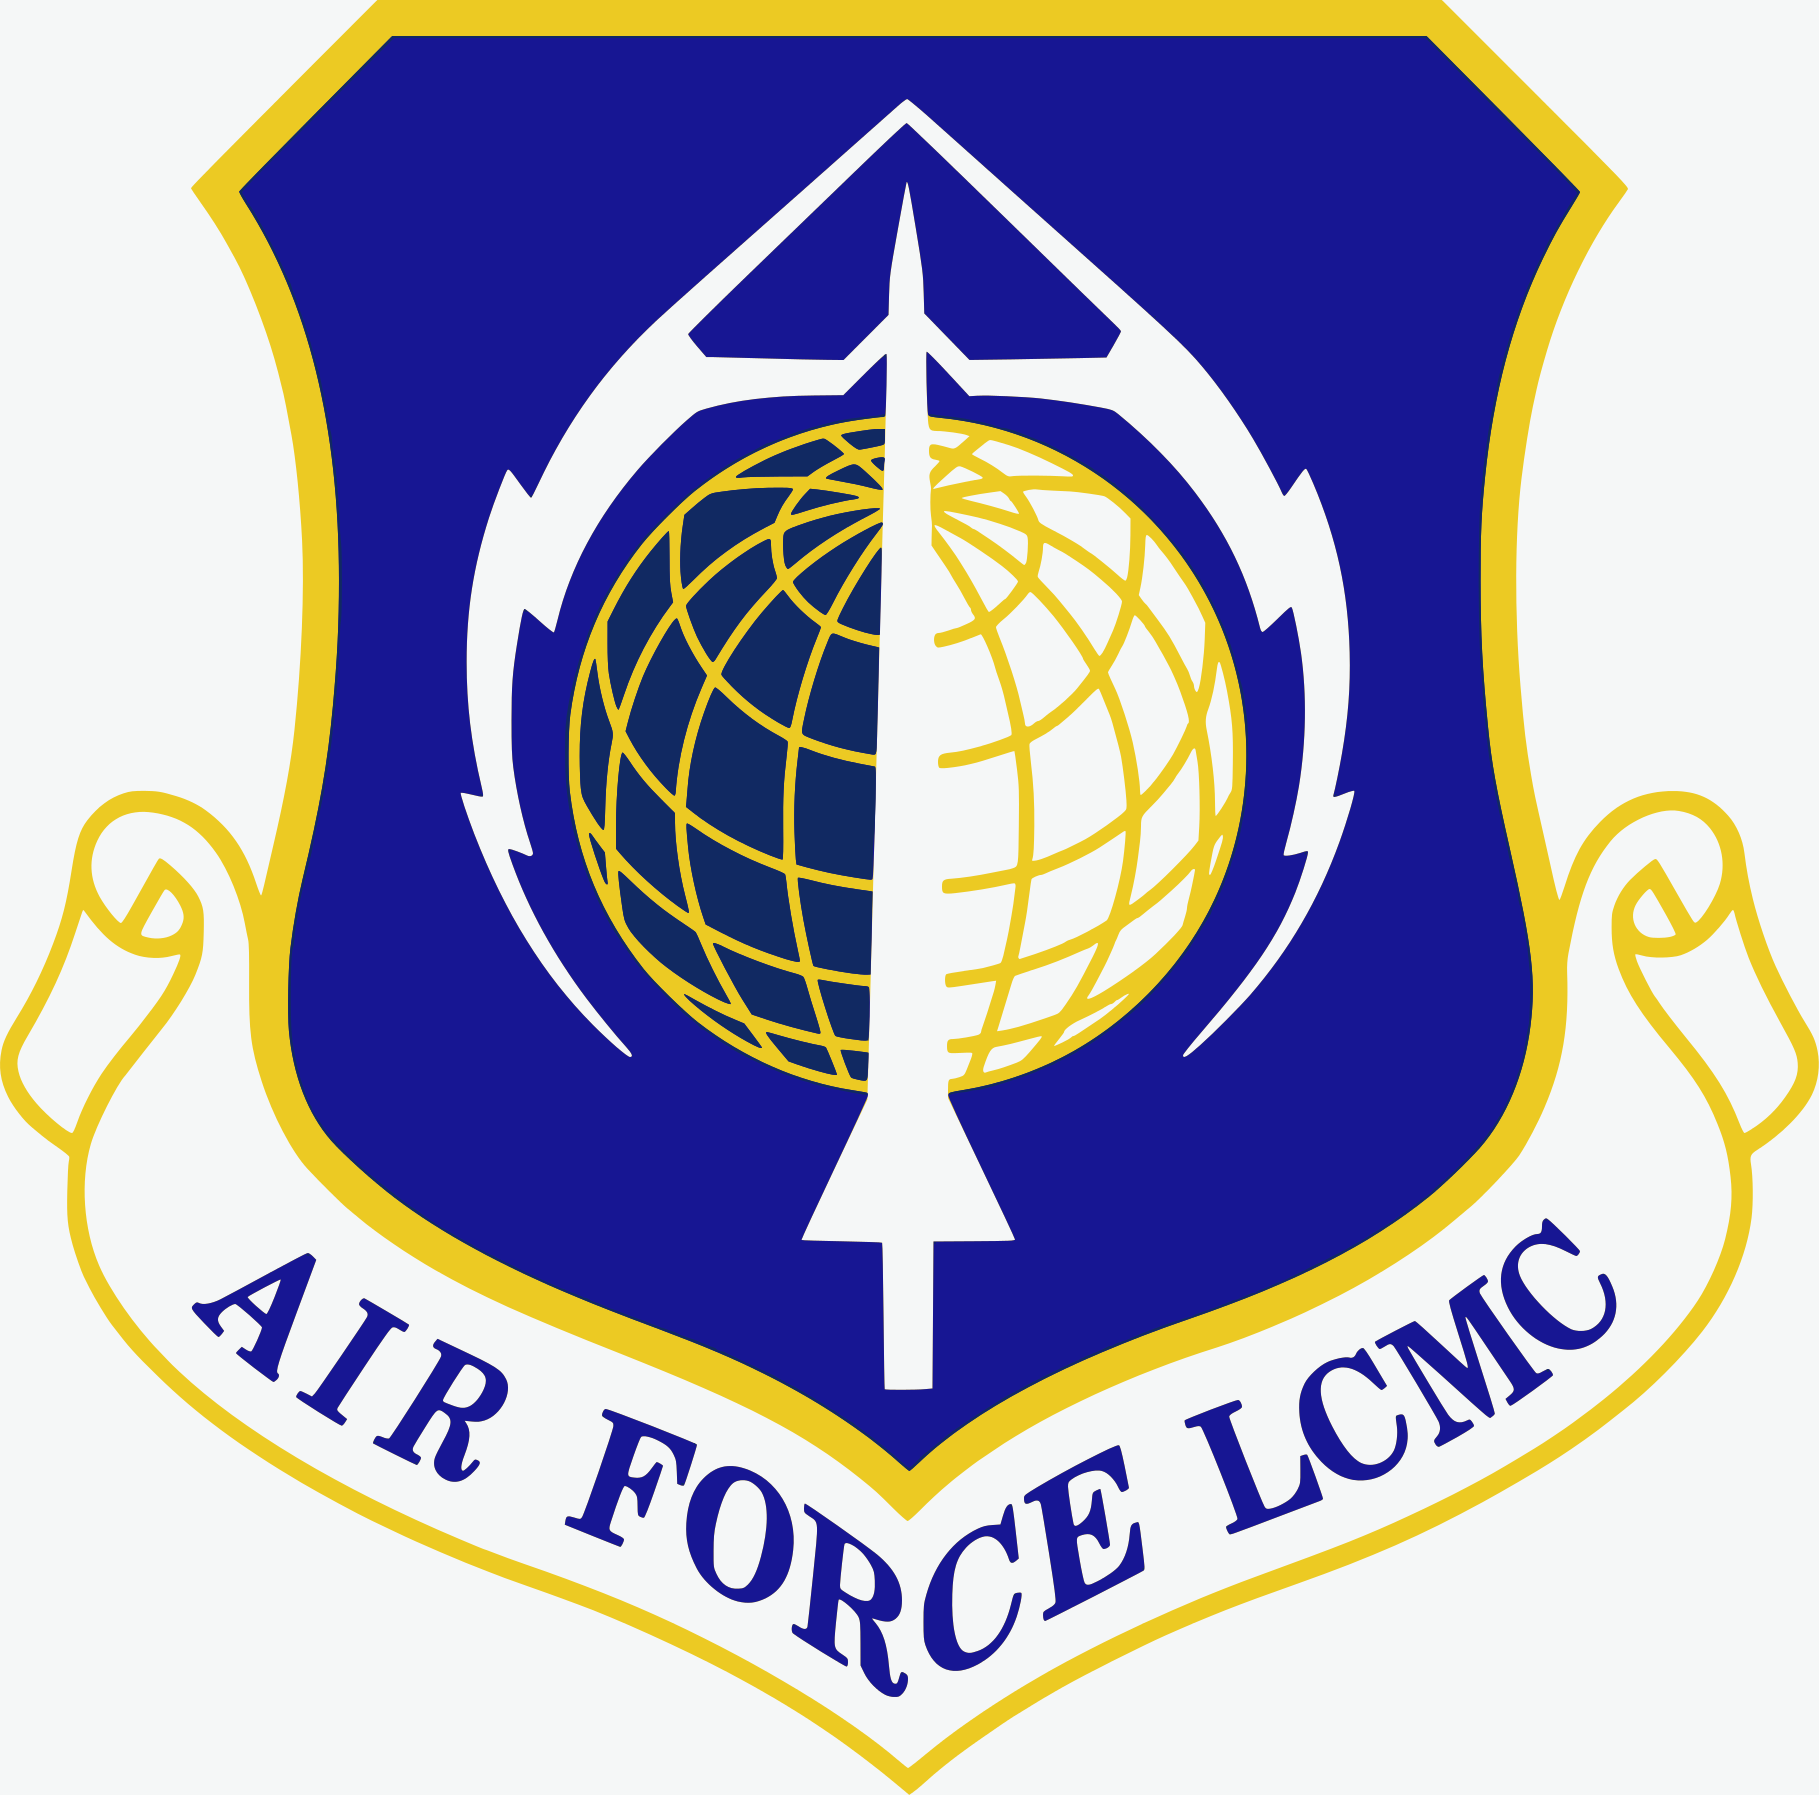 Air Force Logo Png image #29368